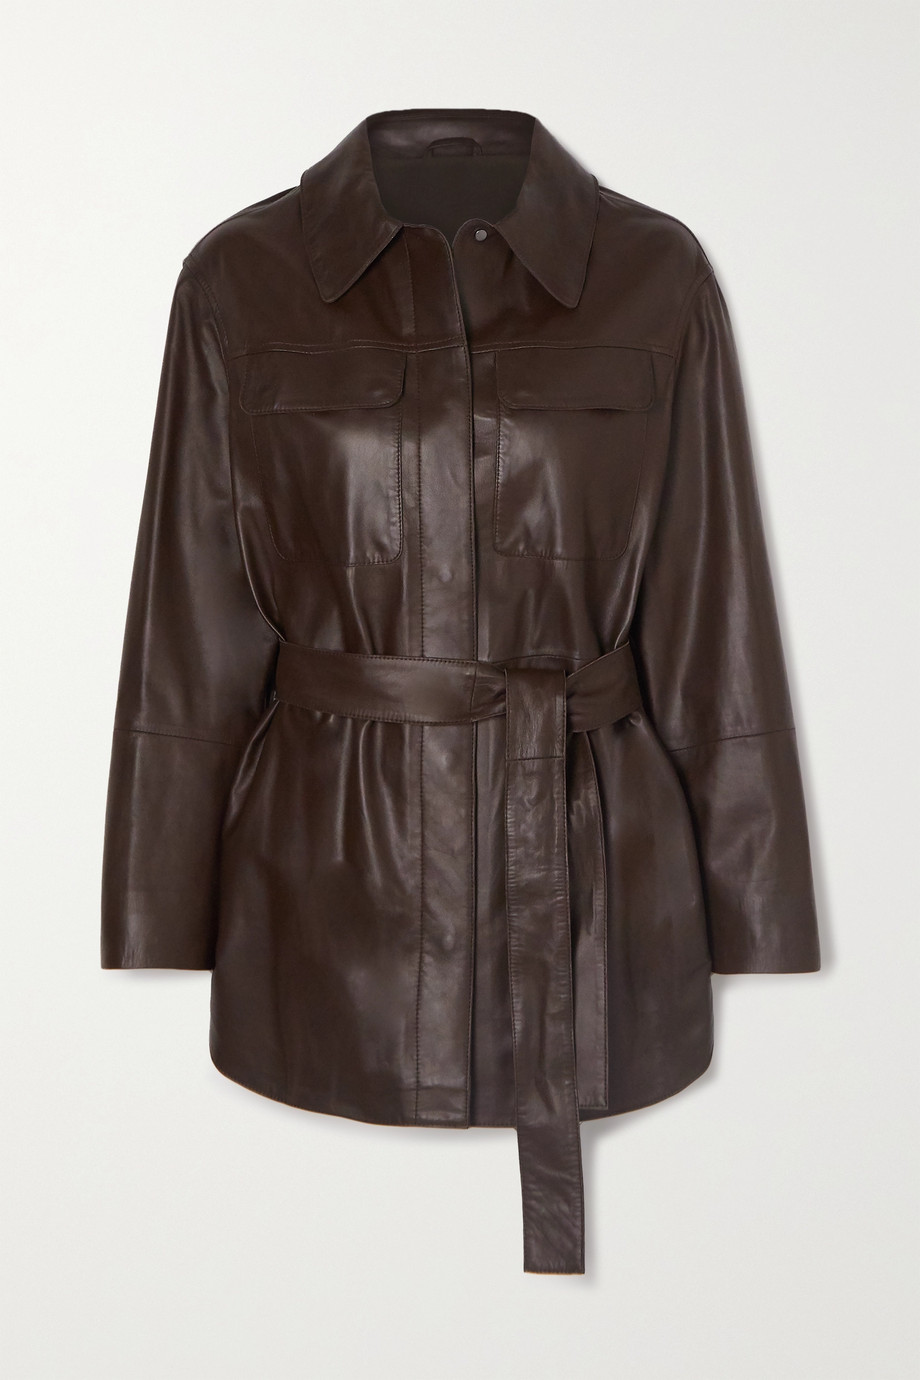 Brunello Cucinelli Belted leather shirt